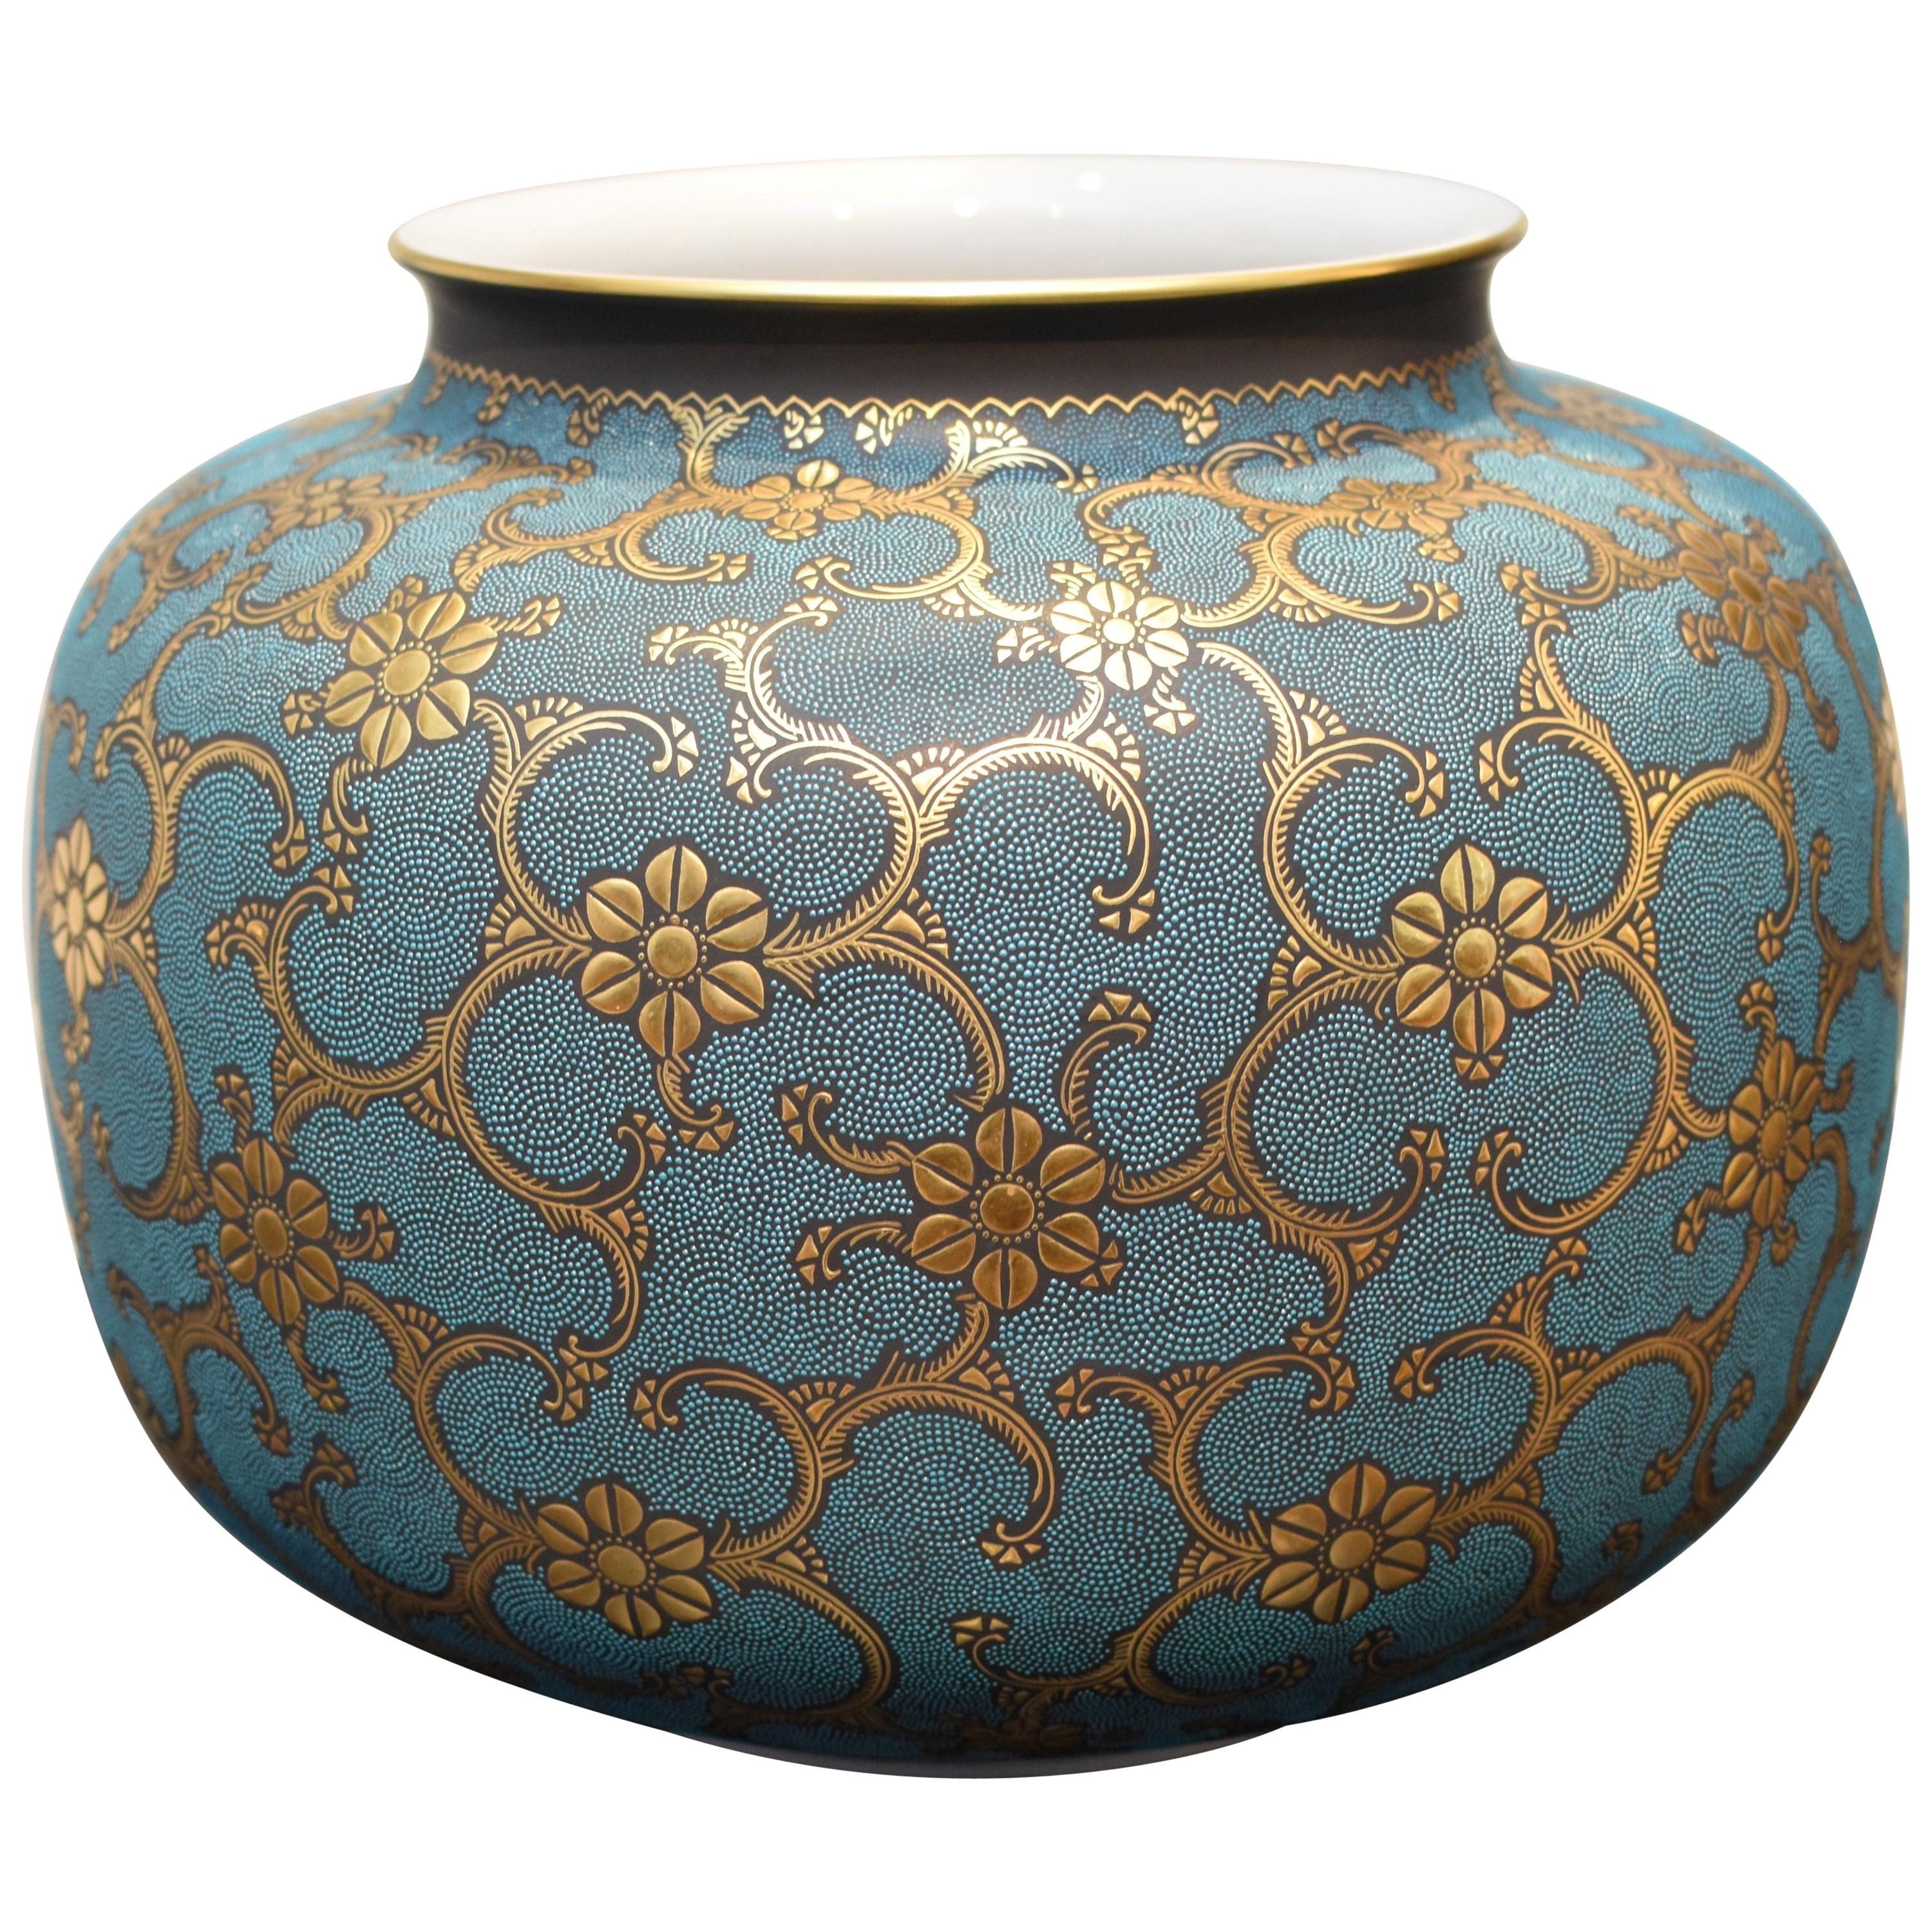 Contemporary Blue Pure Gold Porcelain Vase by Japanese Master Artist